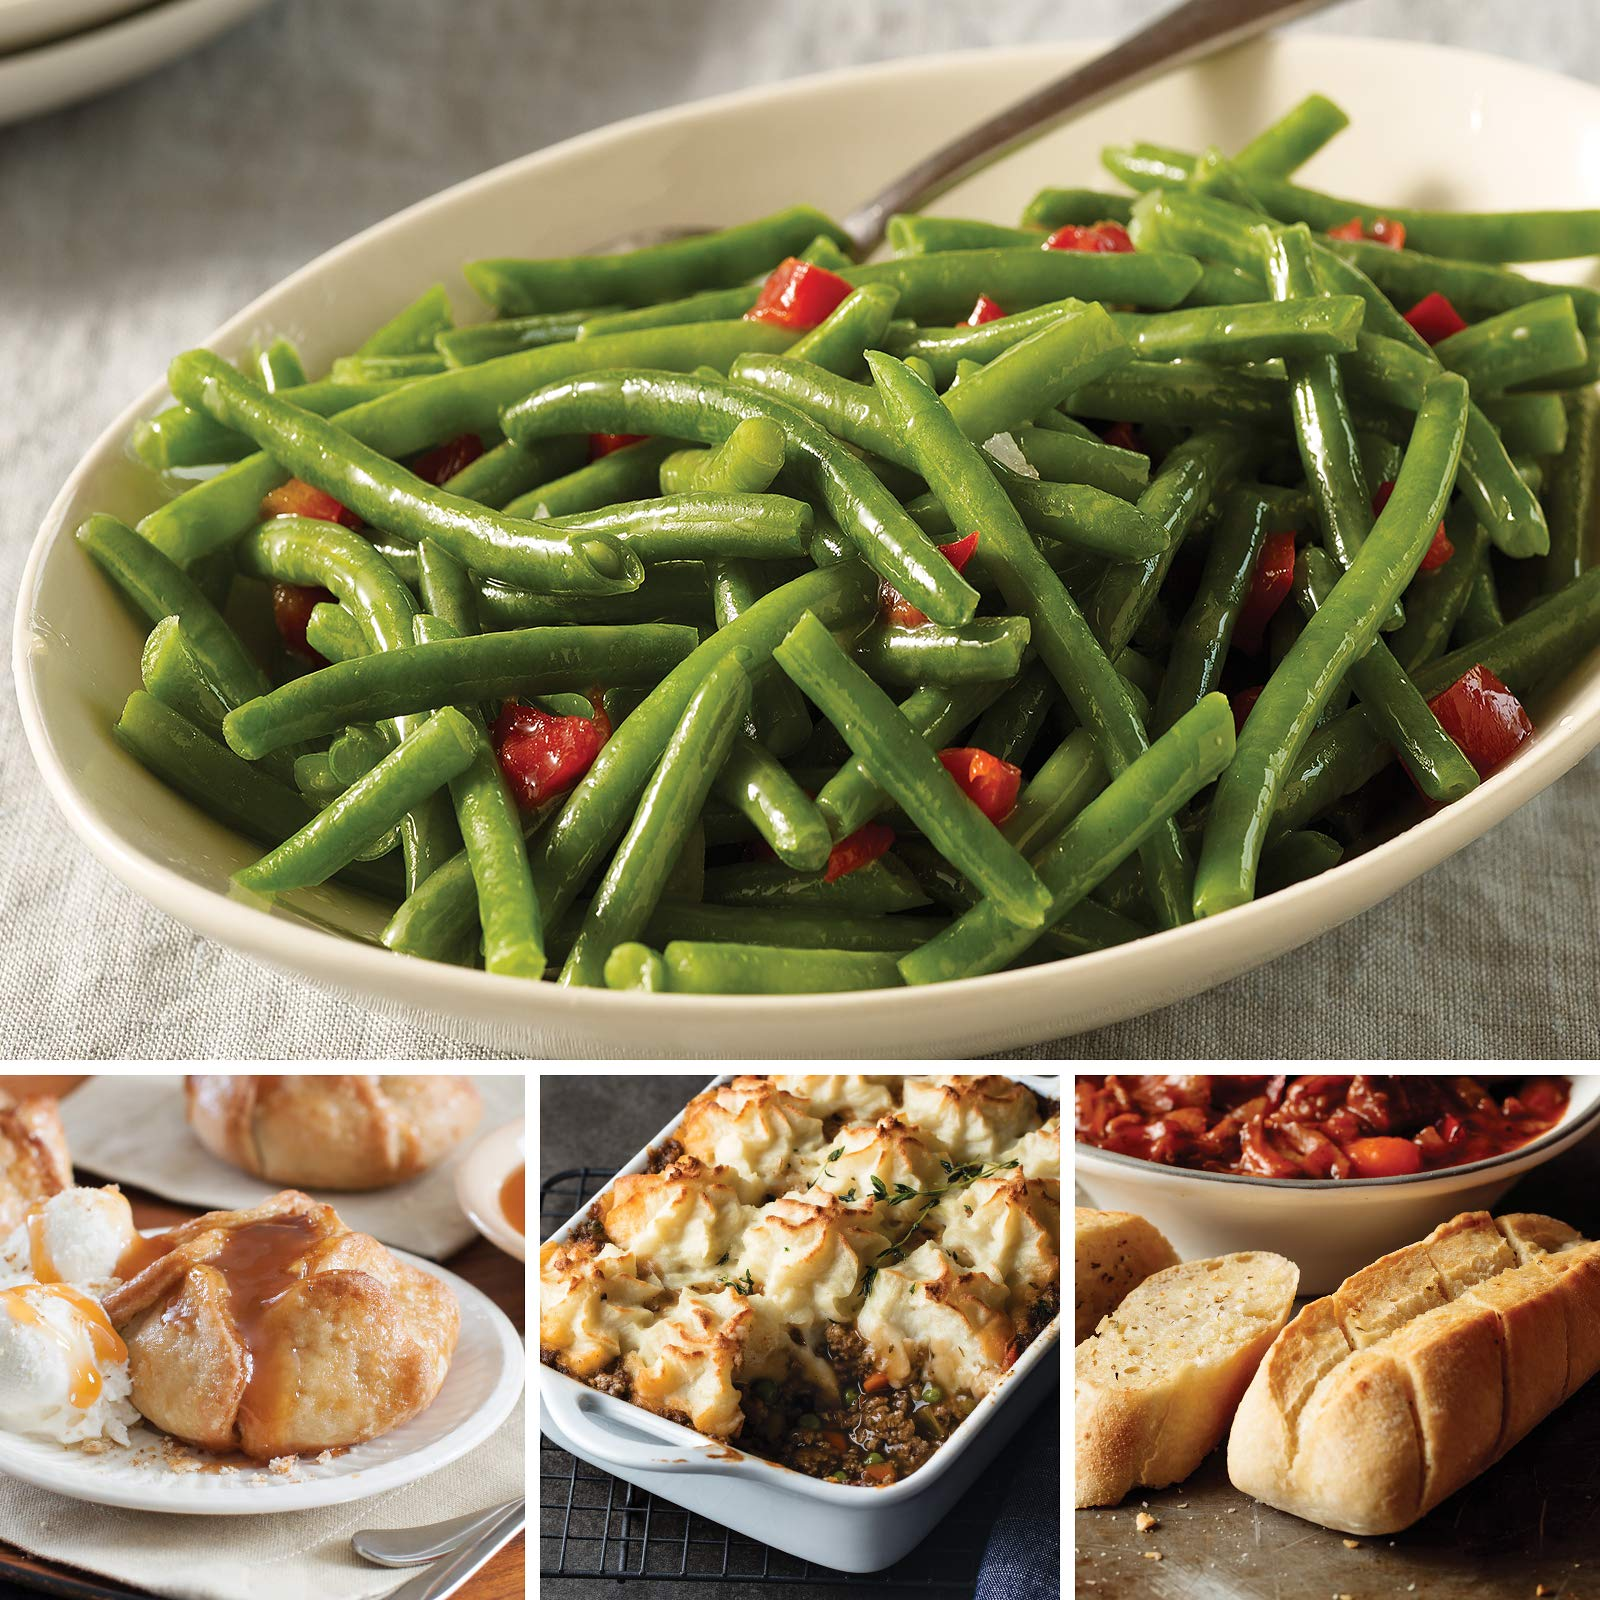 Omaha Steaks St. Patrick's Pub-Style Feast (11-Piece with Beef Shepherd's Pie, Green Beans, Mini-Baguettes with Garlic Butter, and Individual Caramel Apple Tartlets)